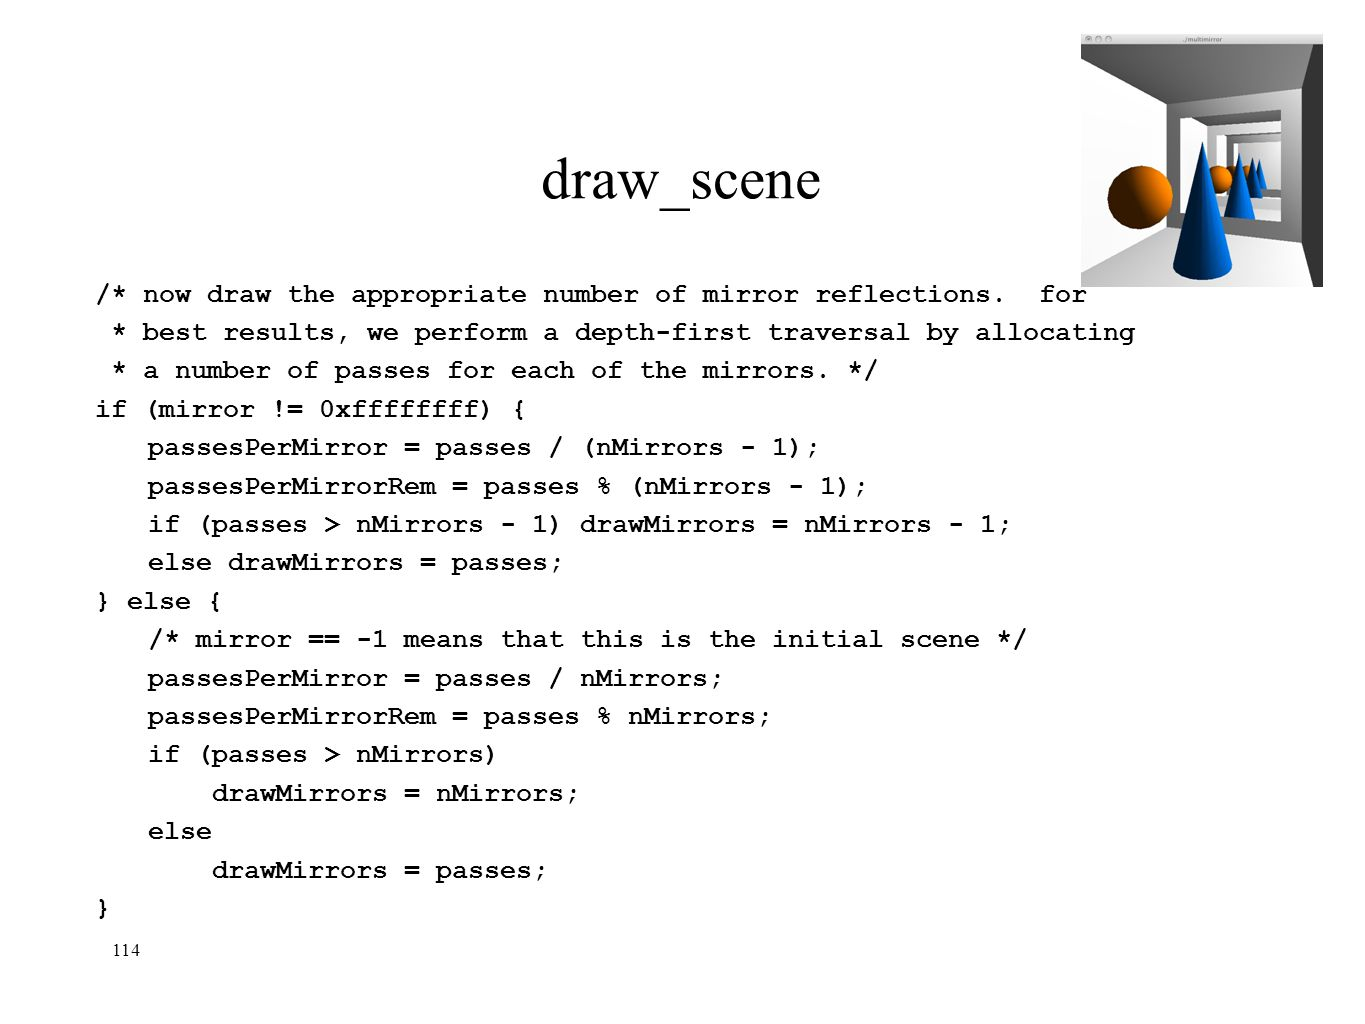 114 draw_scene /* now draw the appropriate number of mirror reflections. for * best results, we perform a depth-first traversal by allocating * a numb